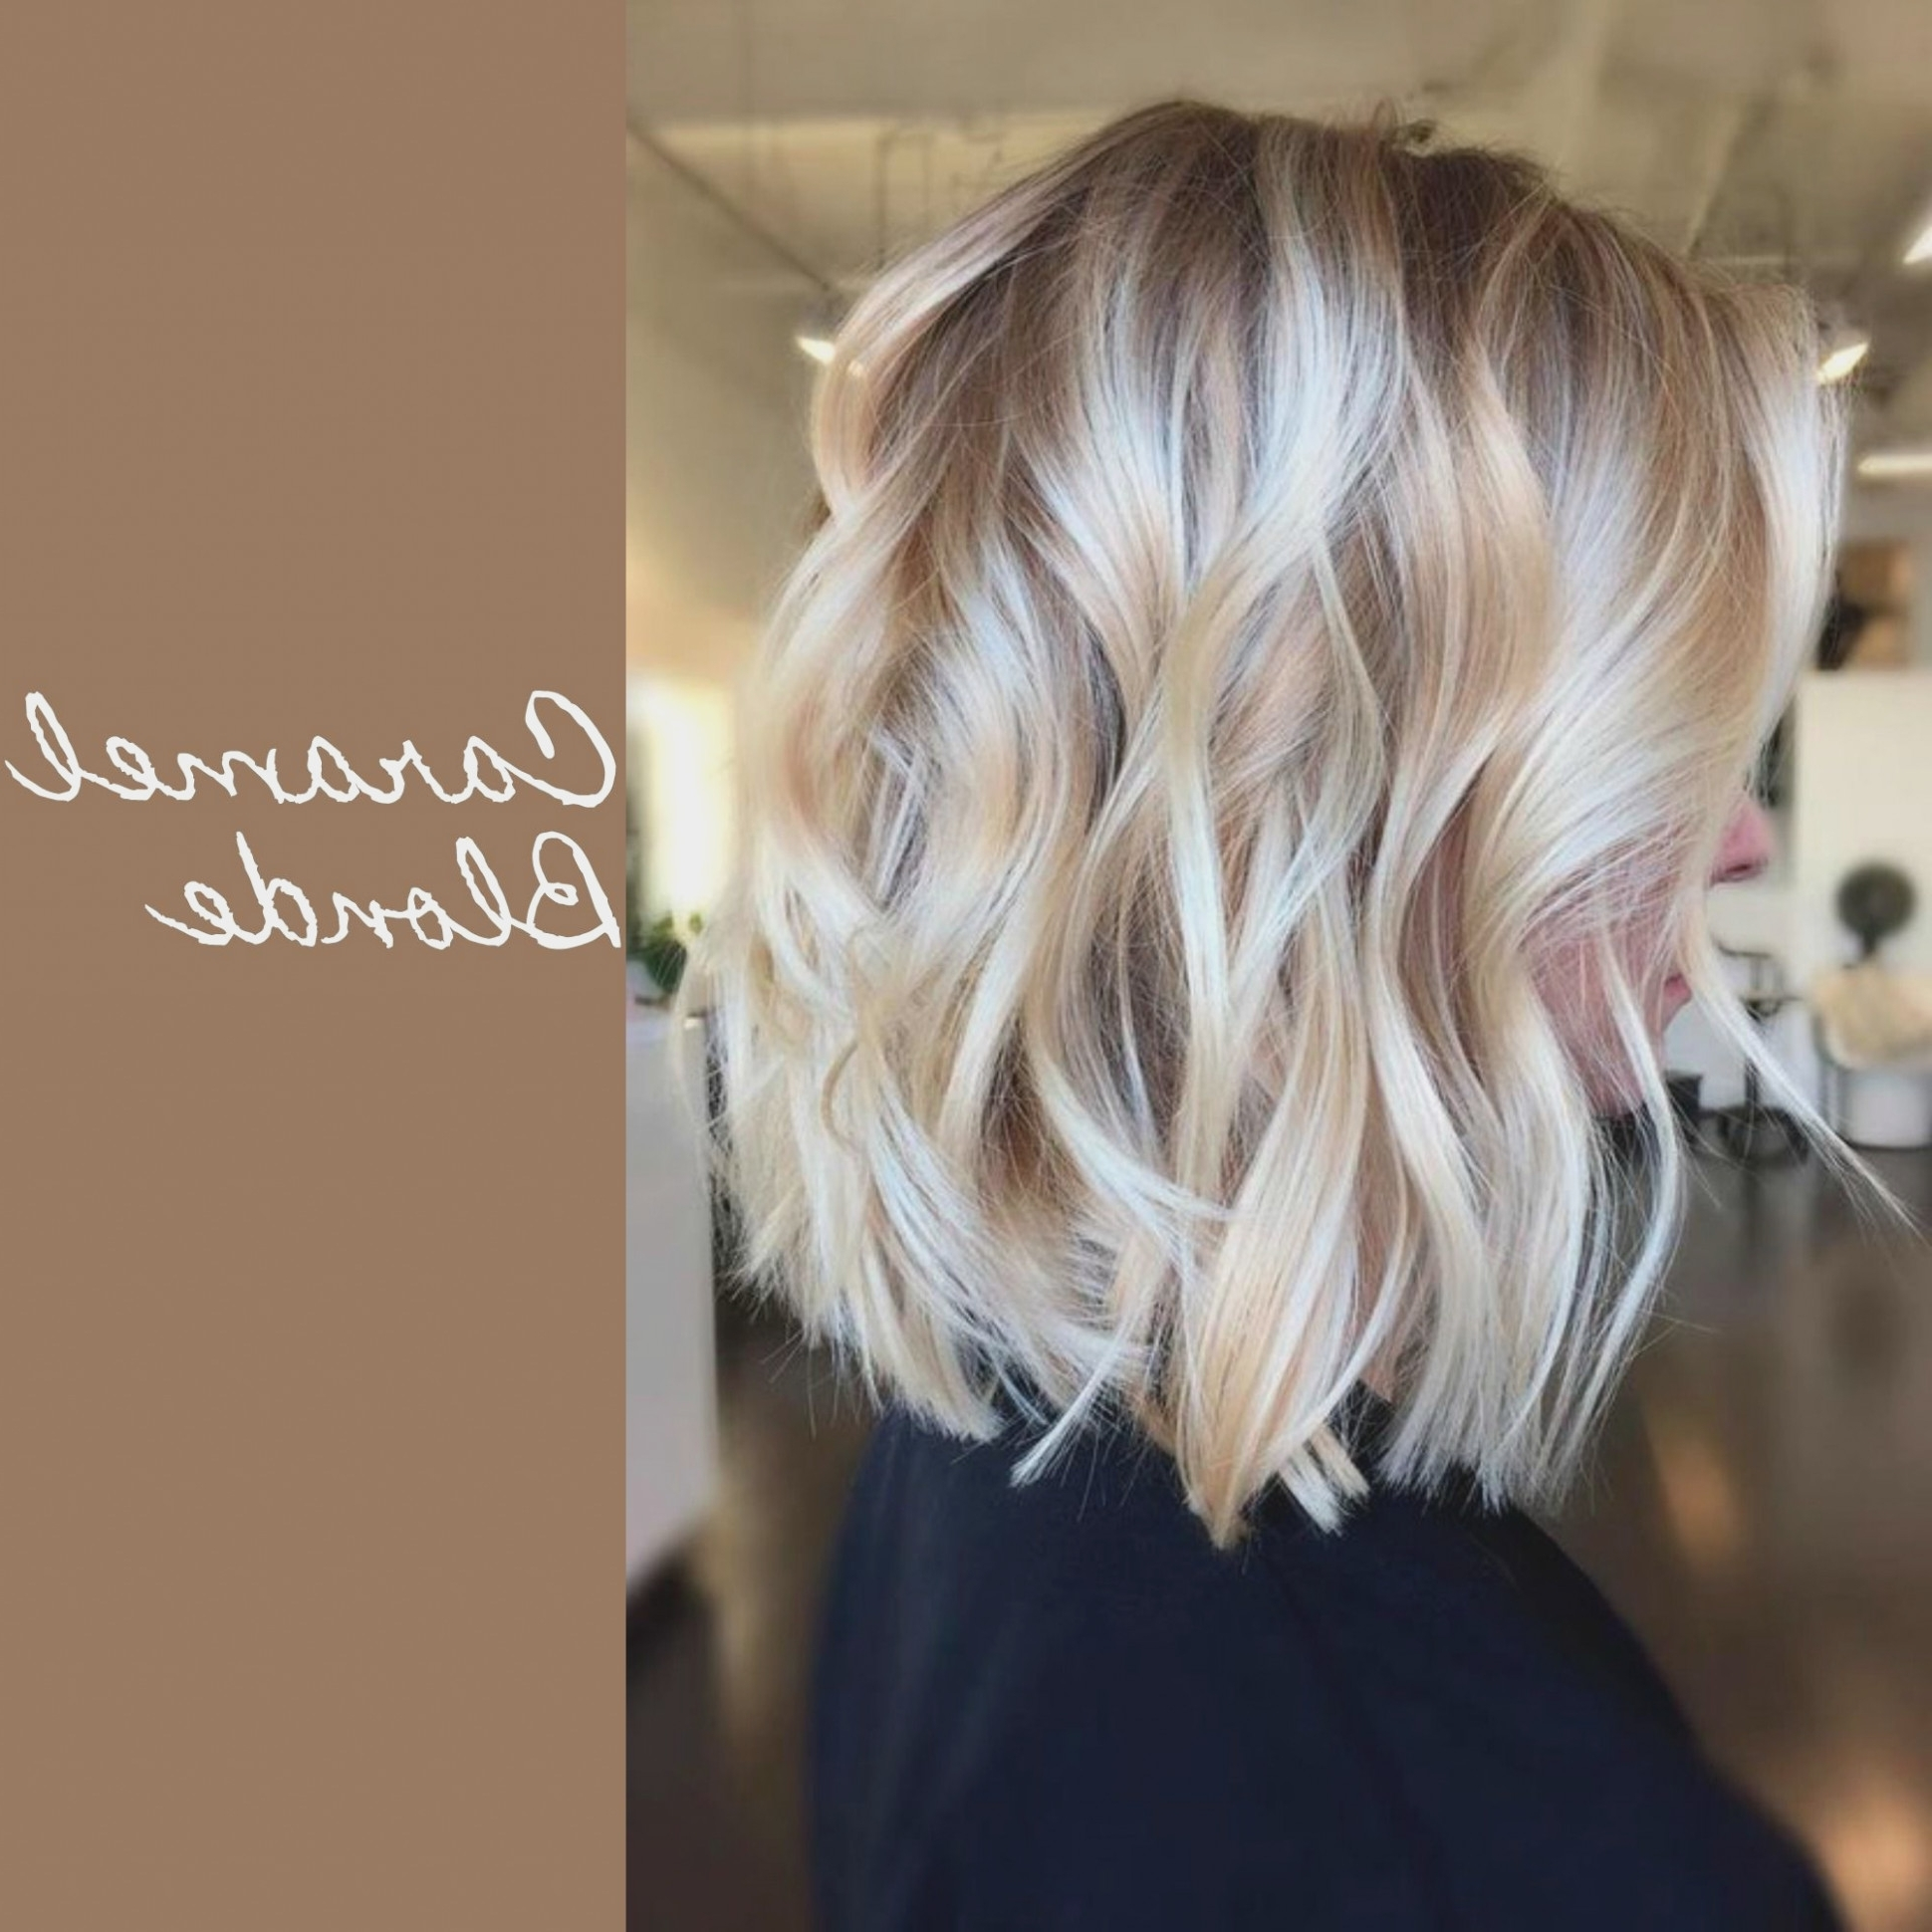 Blonde Hair With Caramel Lowlights #caramelhaircolour (View 5 of 20)